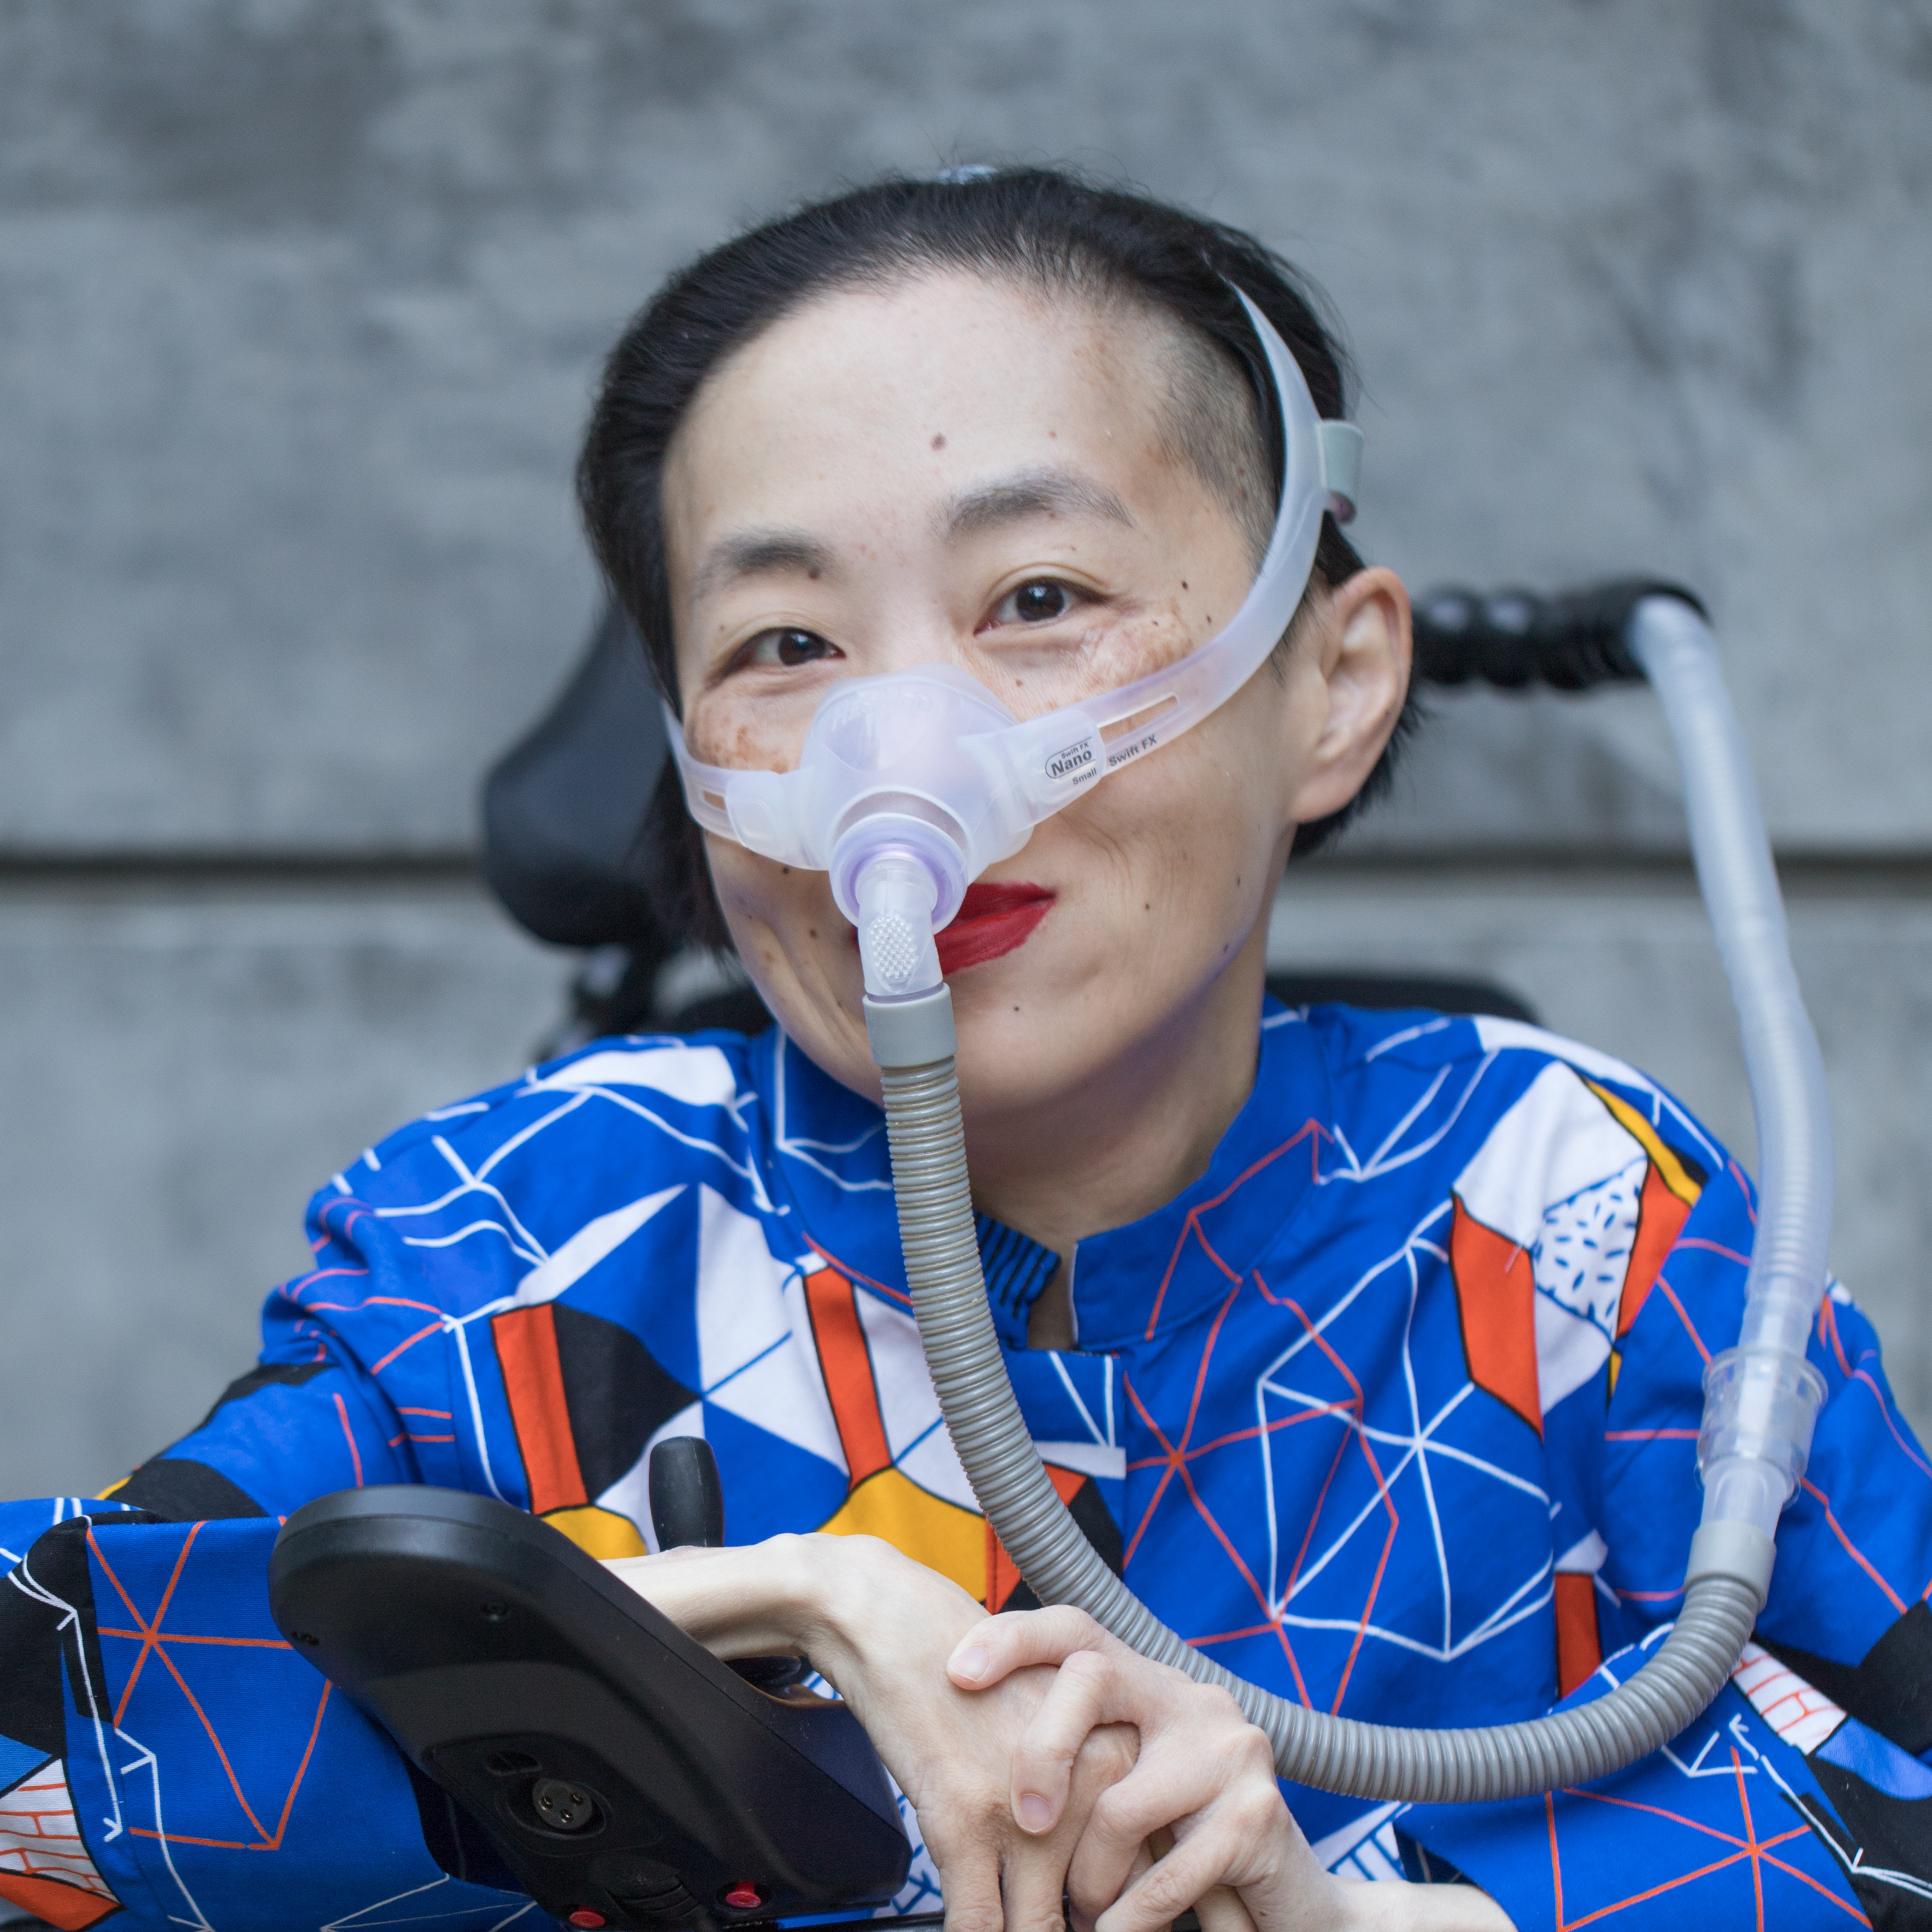 Photo of an Asian American woman in a power chair wearing a blue shirt with a geometric pattern with orange, black, white and yellow lines and cubes; a mask over her nose attached to a gray tube; and bright red lip color. She is smiling at the camera.